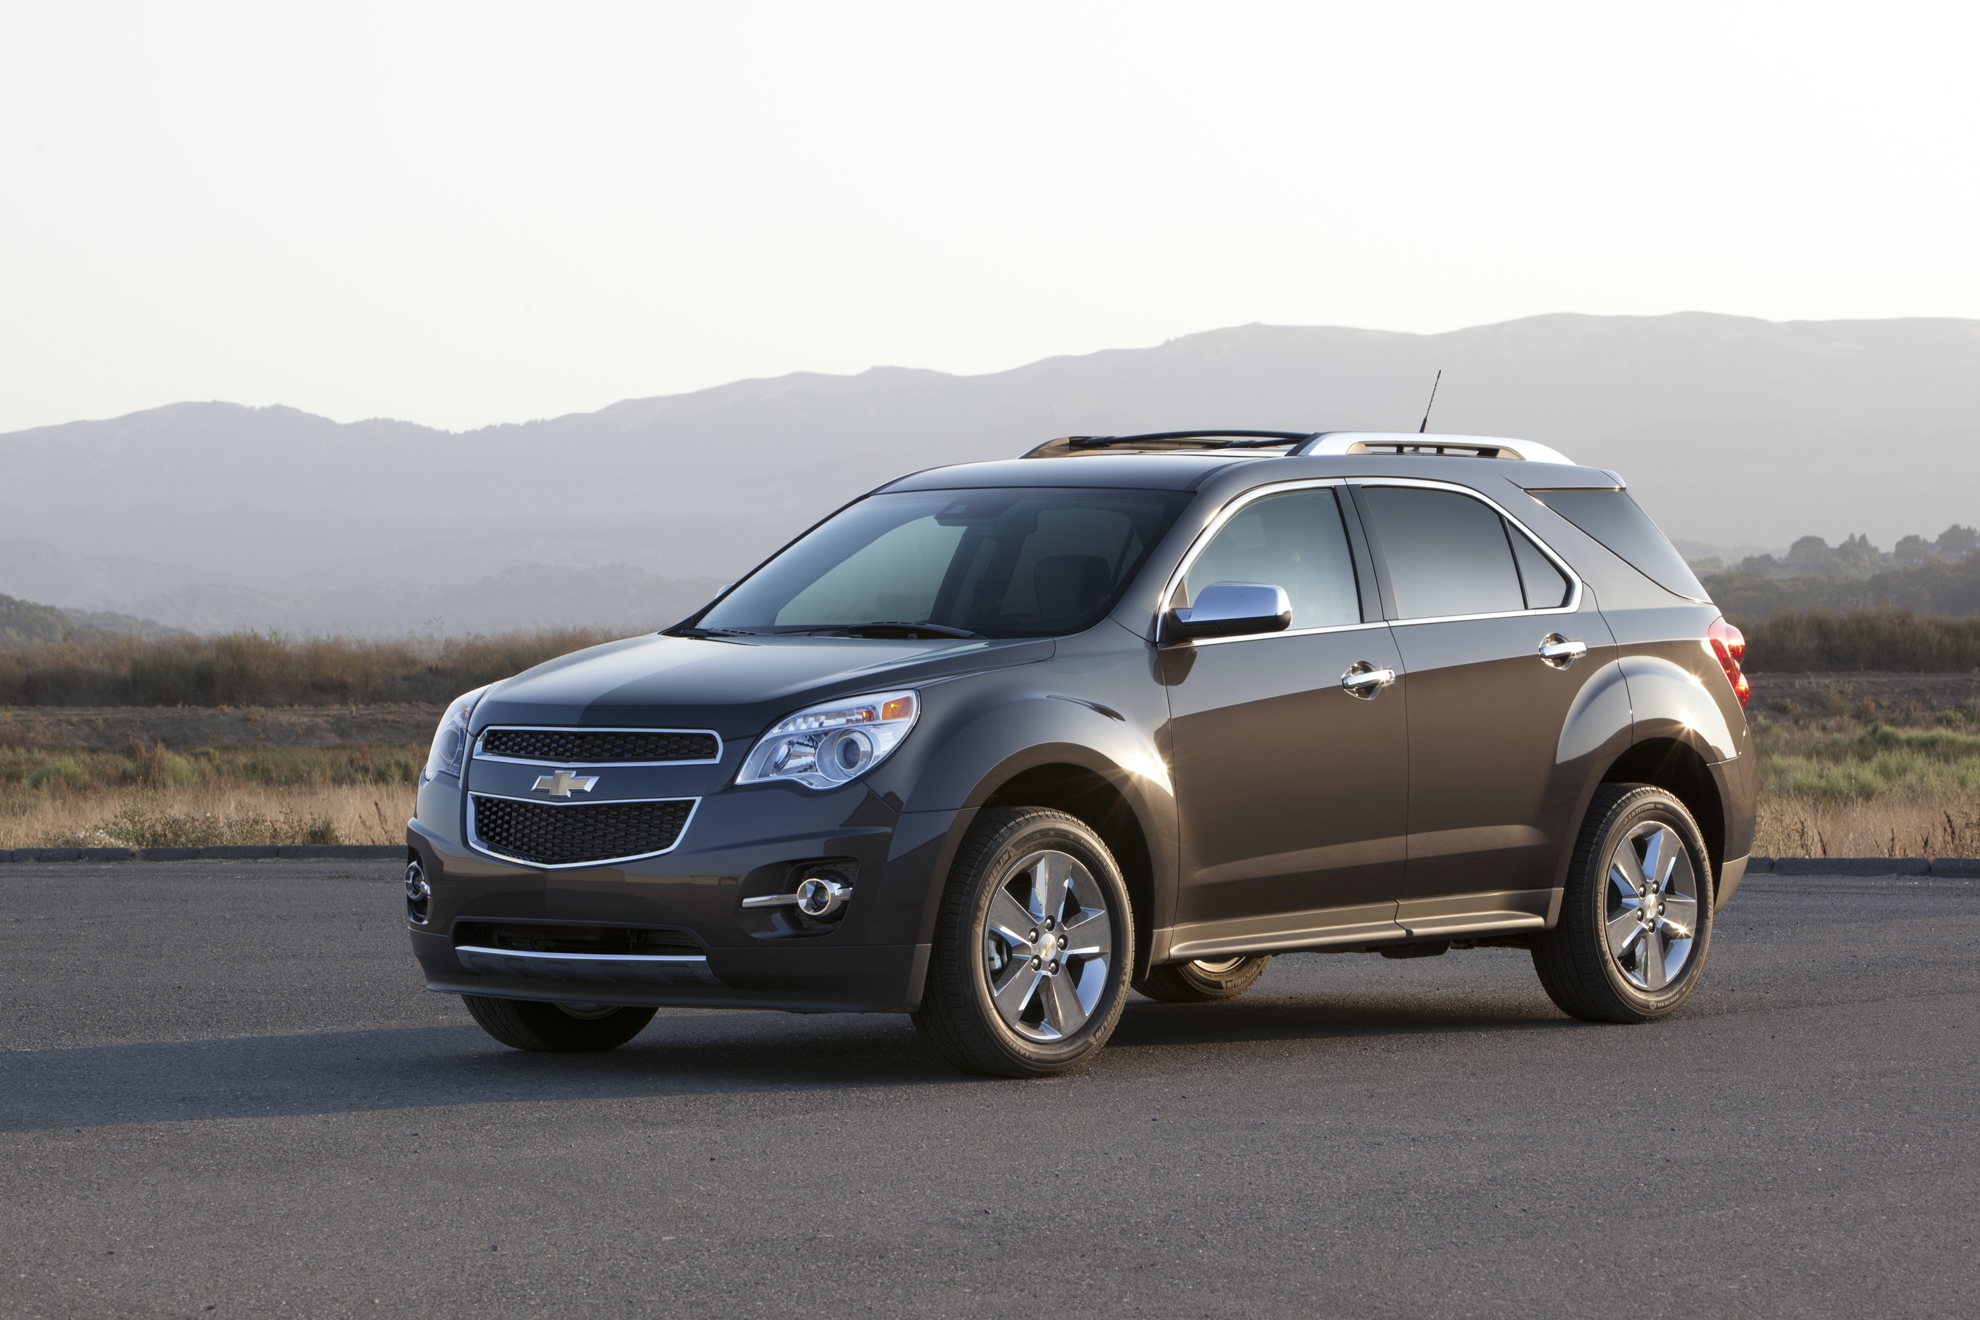 Chevrolet Equinox Compact Suv Sales Still Rising After